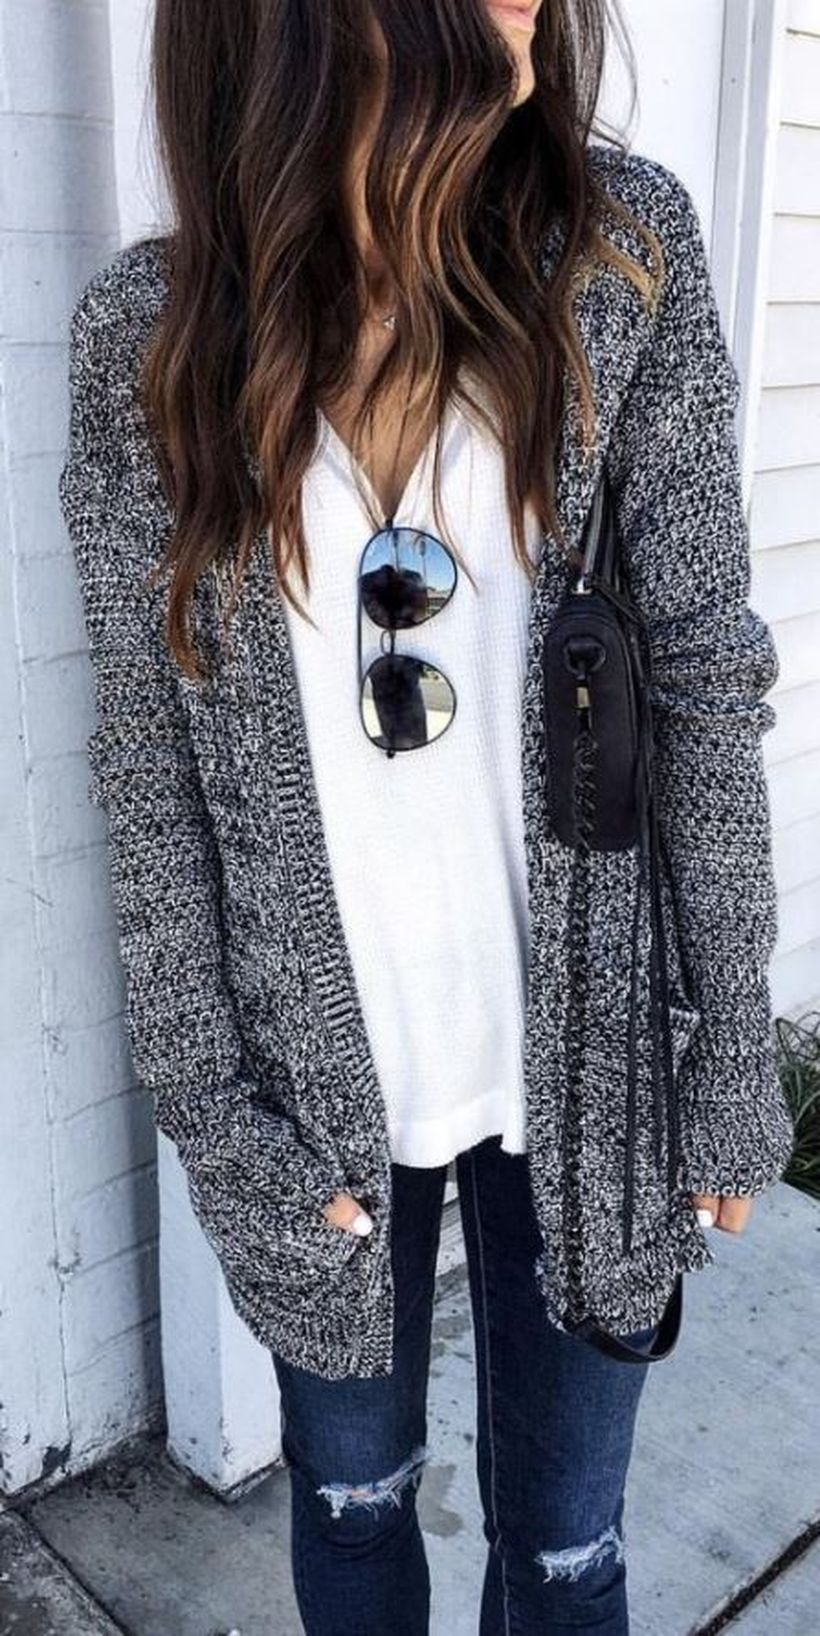 Pin by Jesslyn Lewis on closet. | Fashion, Fall fashion ...